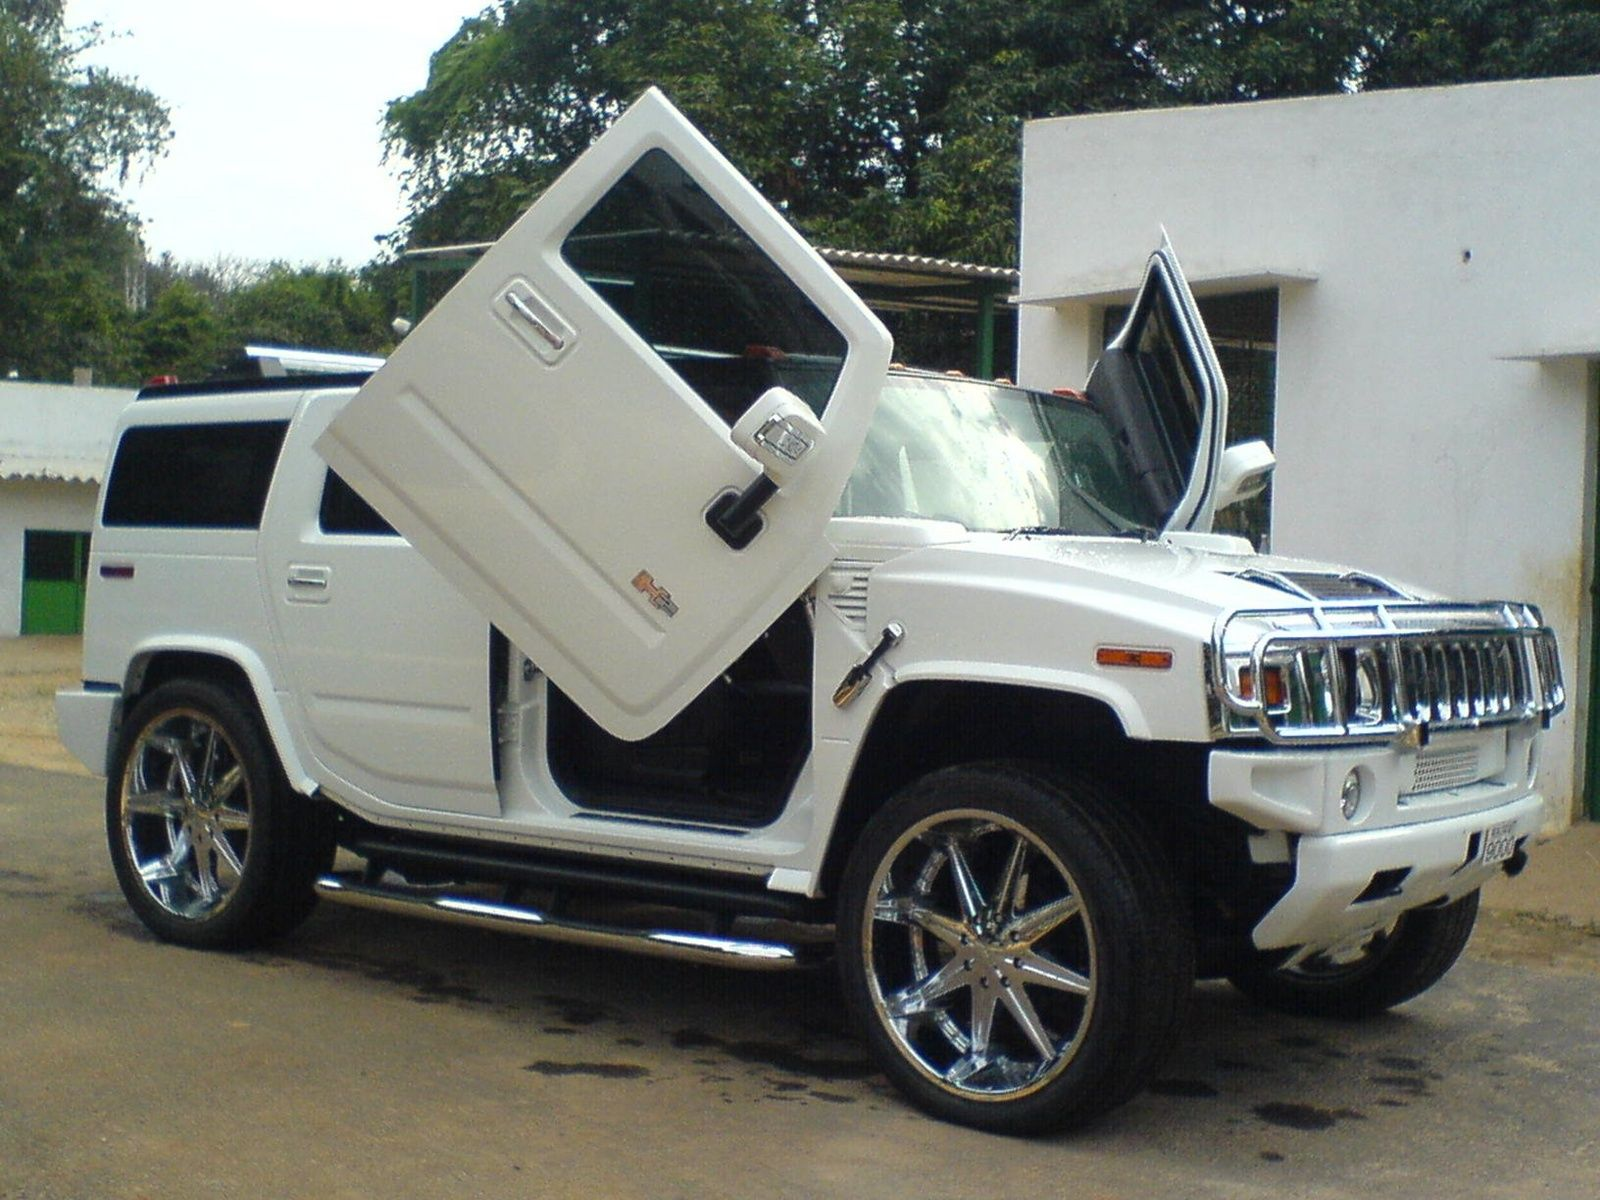 Pin By Mark Gonzales On Dream Rides Hummer Cars Hummer